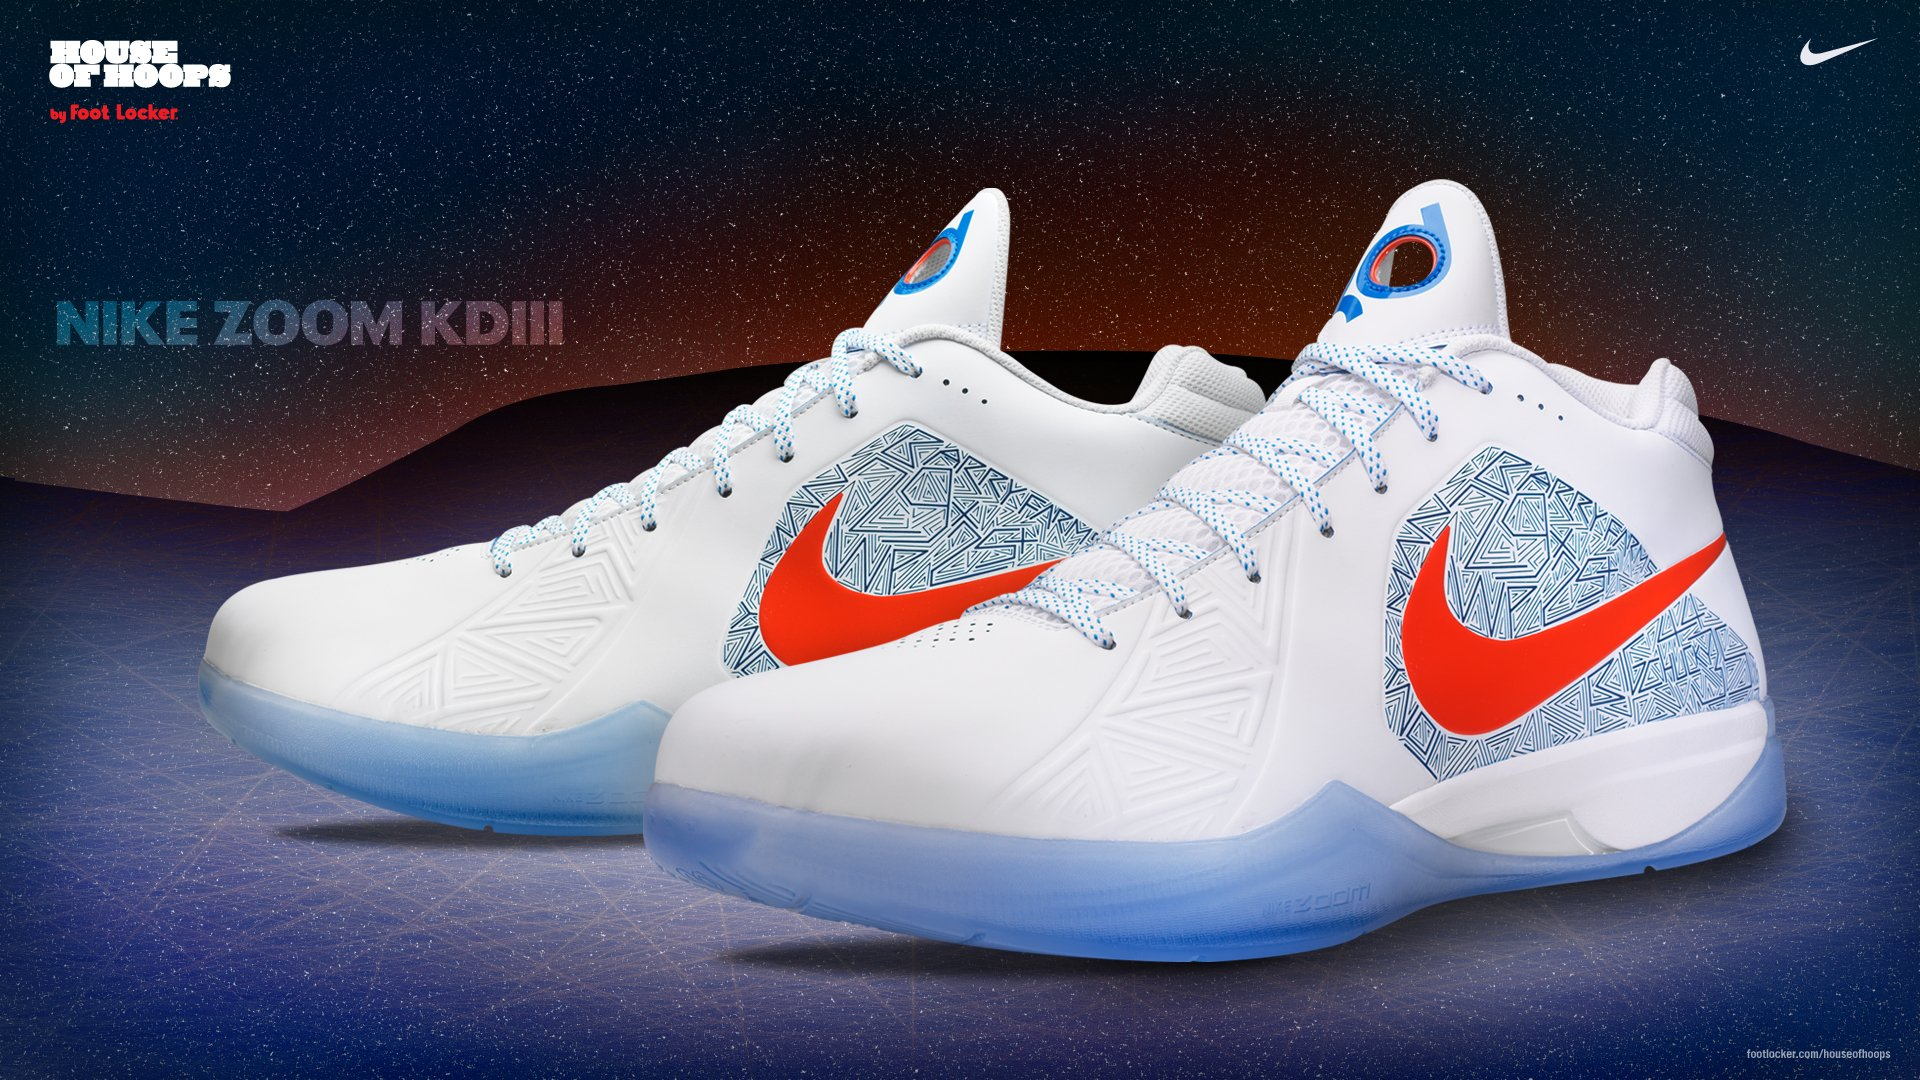 Nike KD 3 News, Colorways, Releases